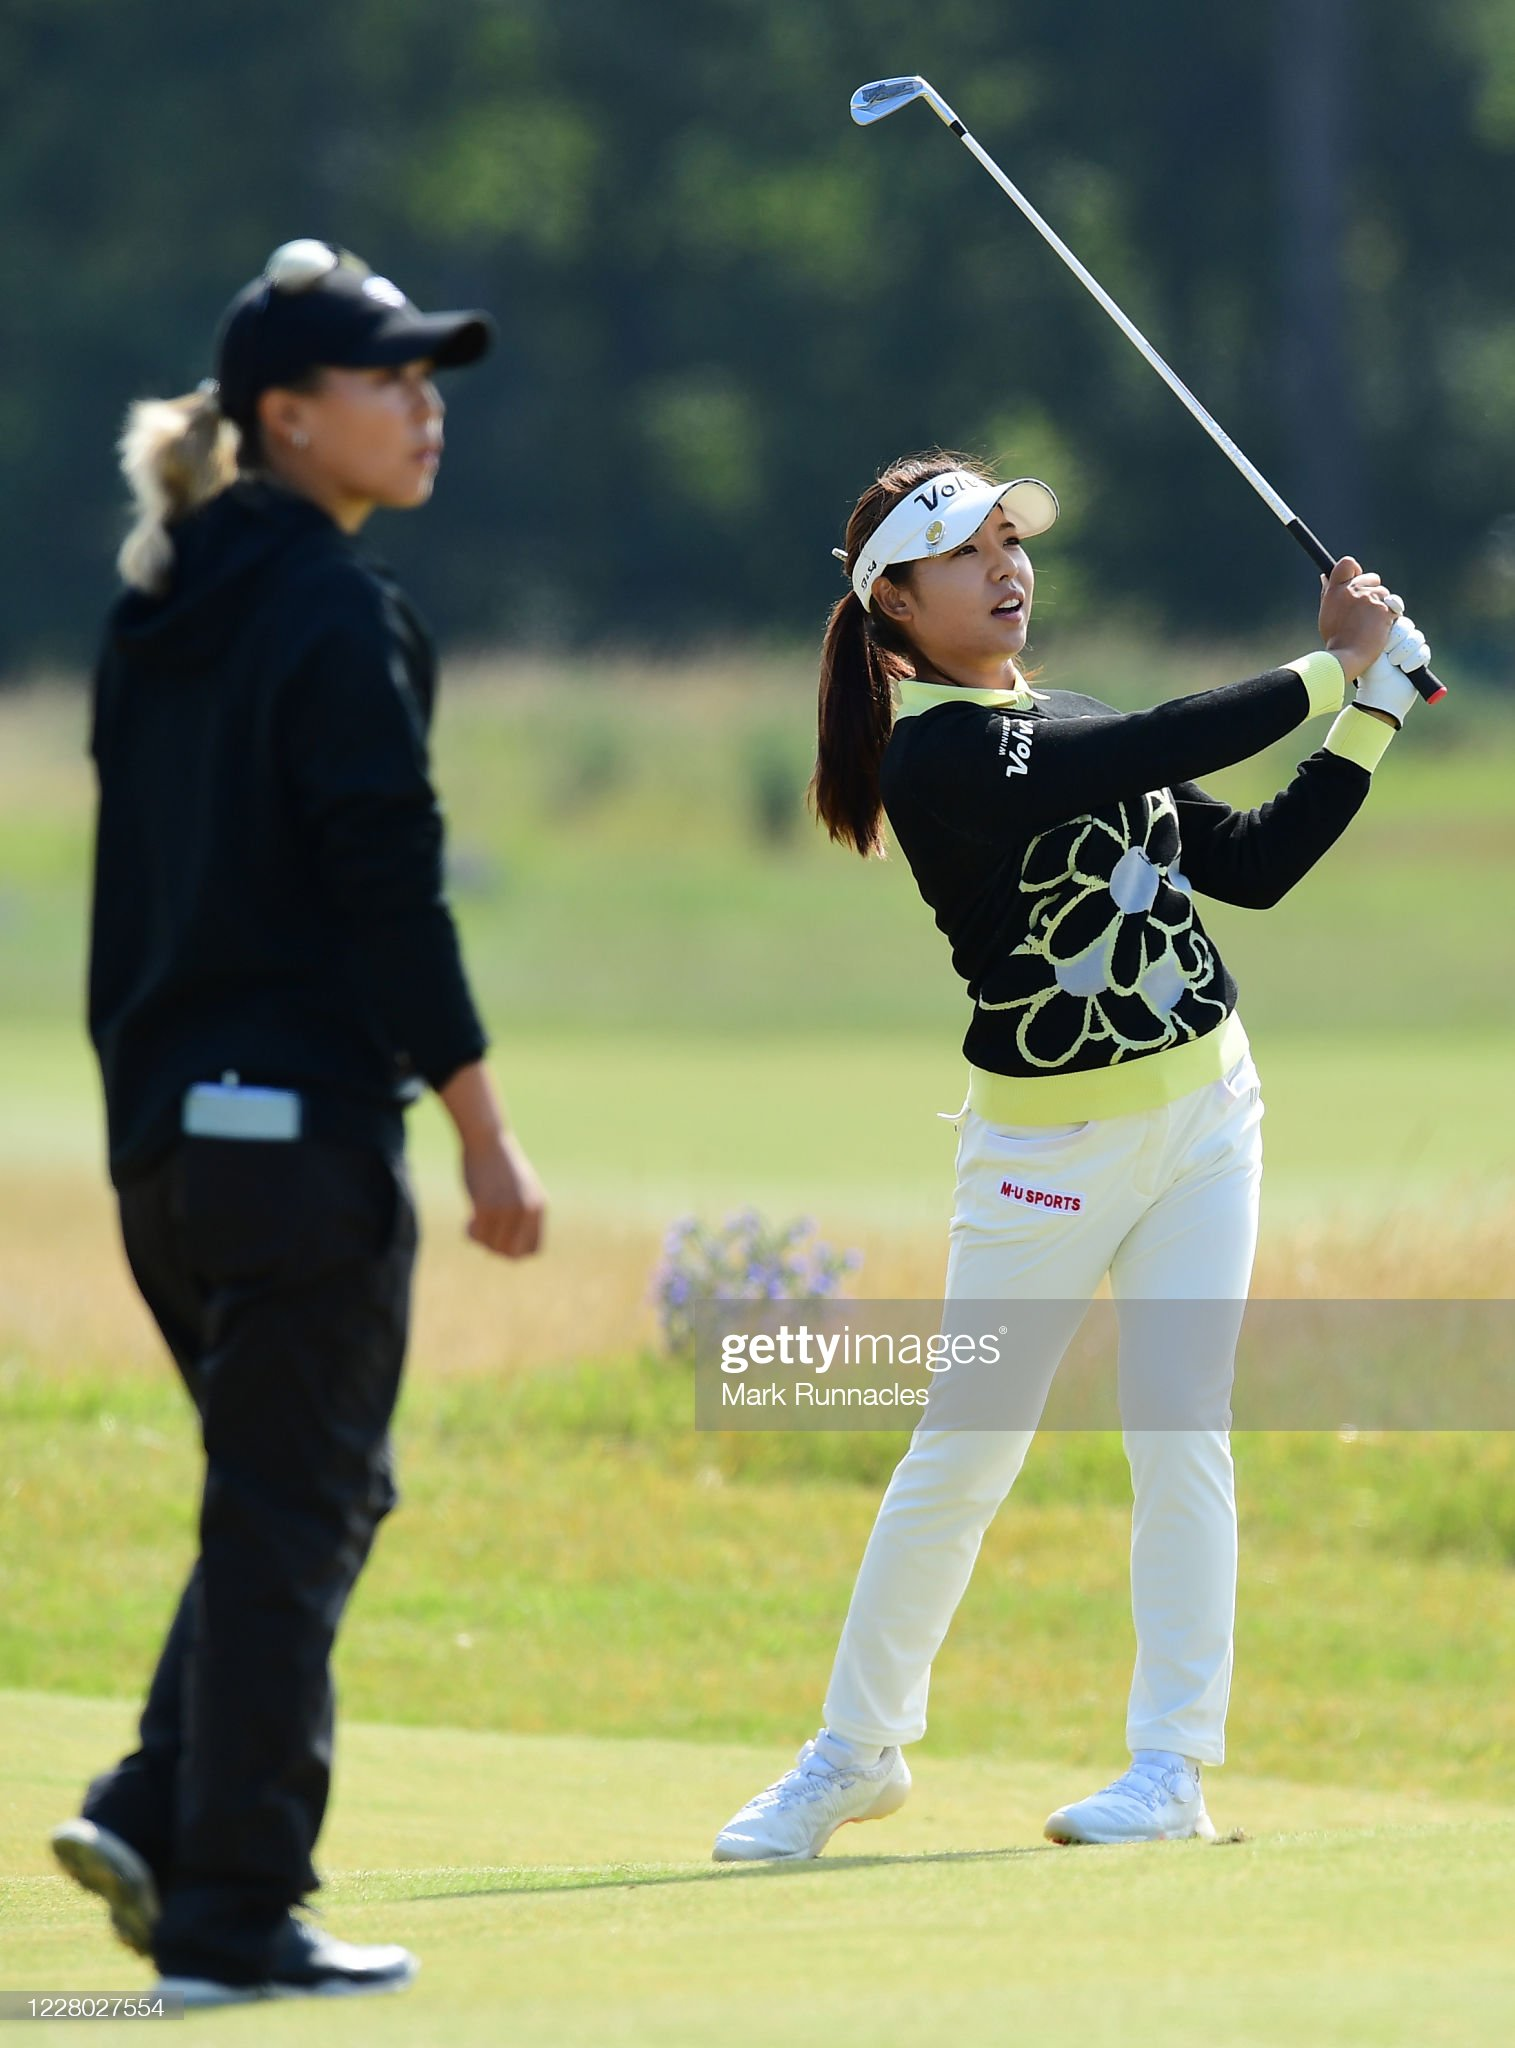 https://media.gettyimages.com/photos/mi-hyang-lee-of-korea-plays-her-second-shot-at-the-2nd-hole-during-picture-id1228027554?s=2048x2048